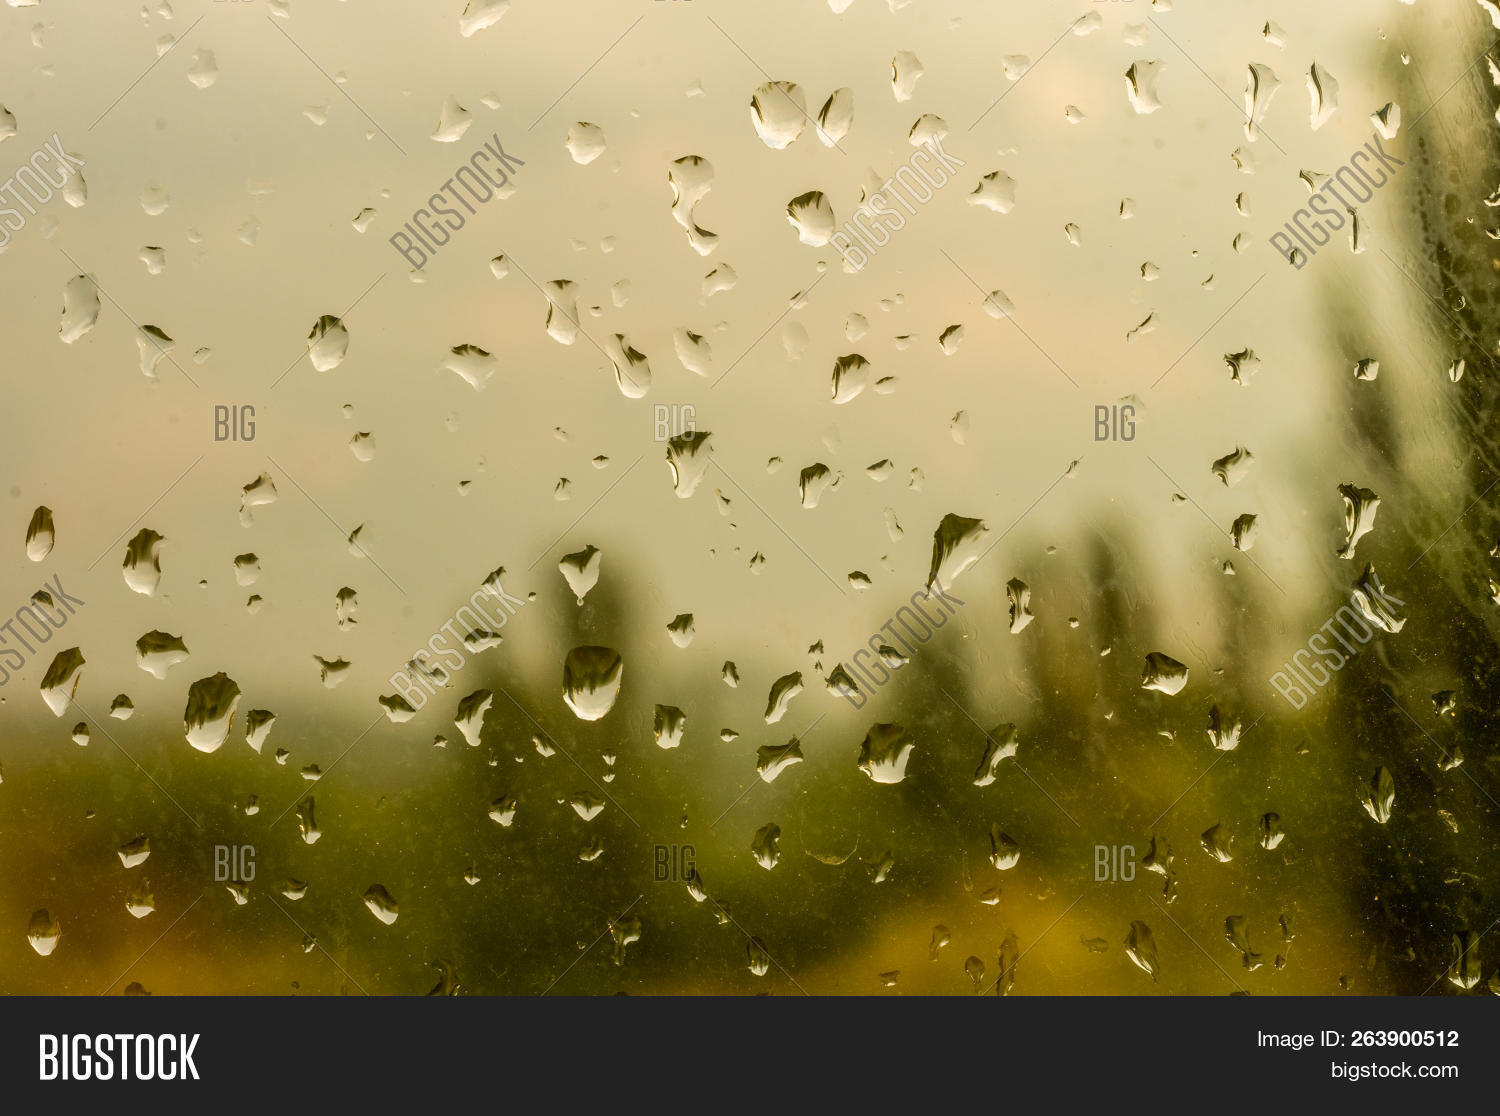 Raindrops On Window Image & Photo (Free Trial) | Bigstock